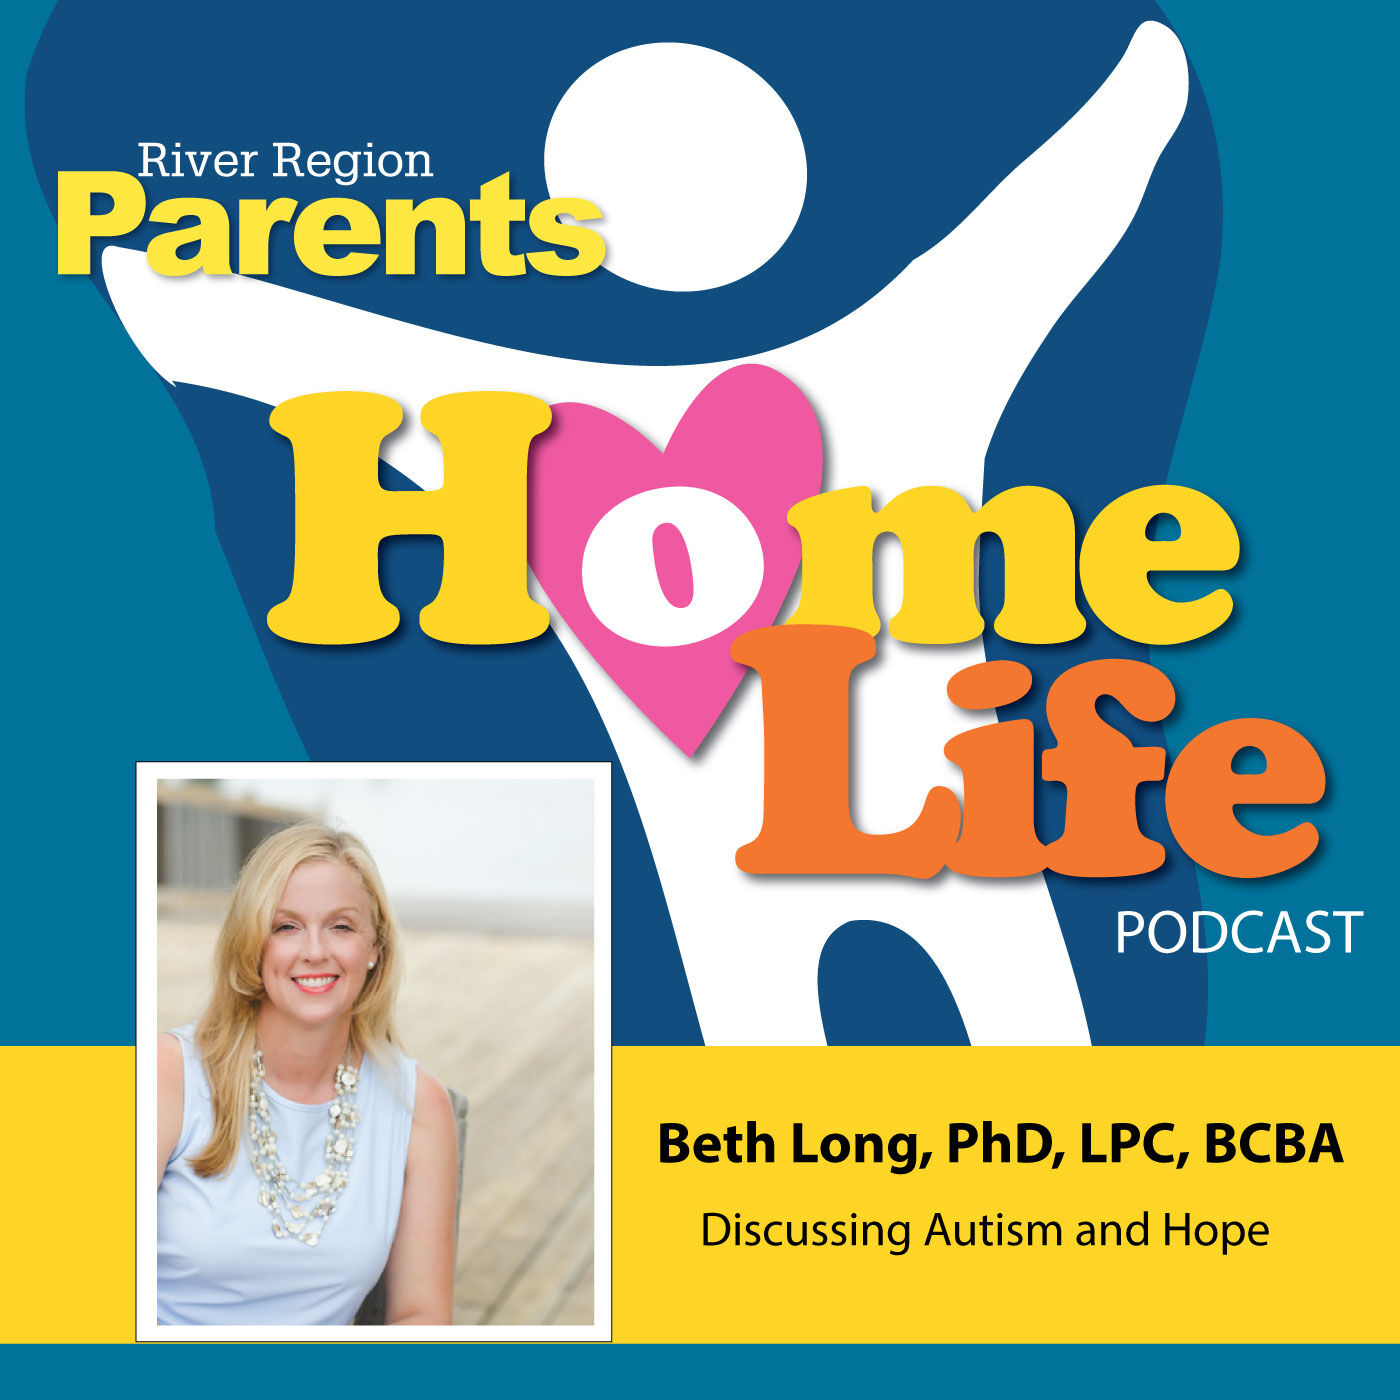 Discussing Autism and Hope with Beth Long